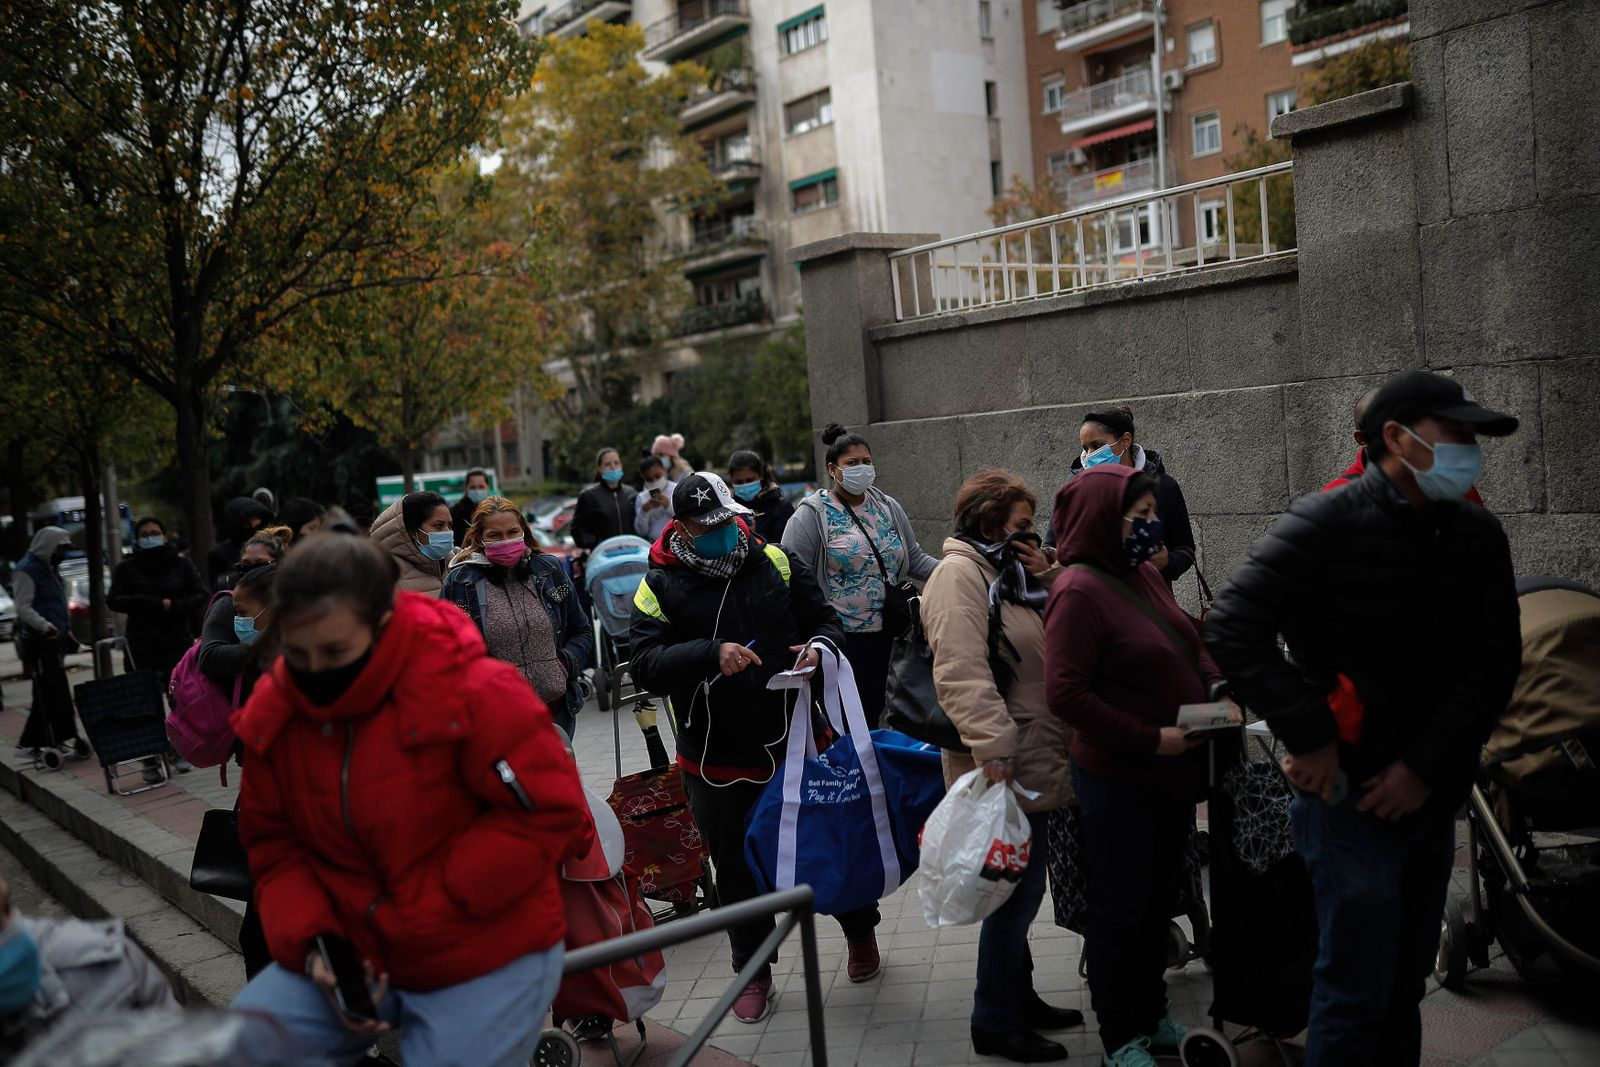 Spanish economy hit hard as virus continues to snowball